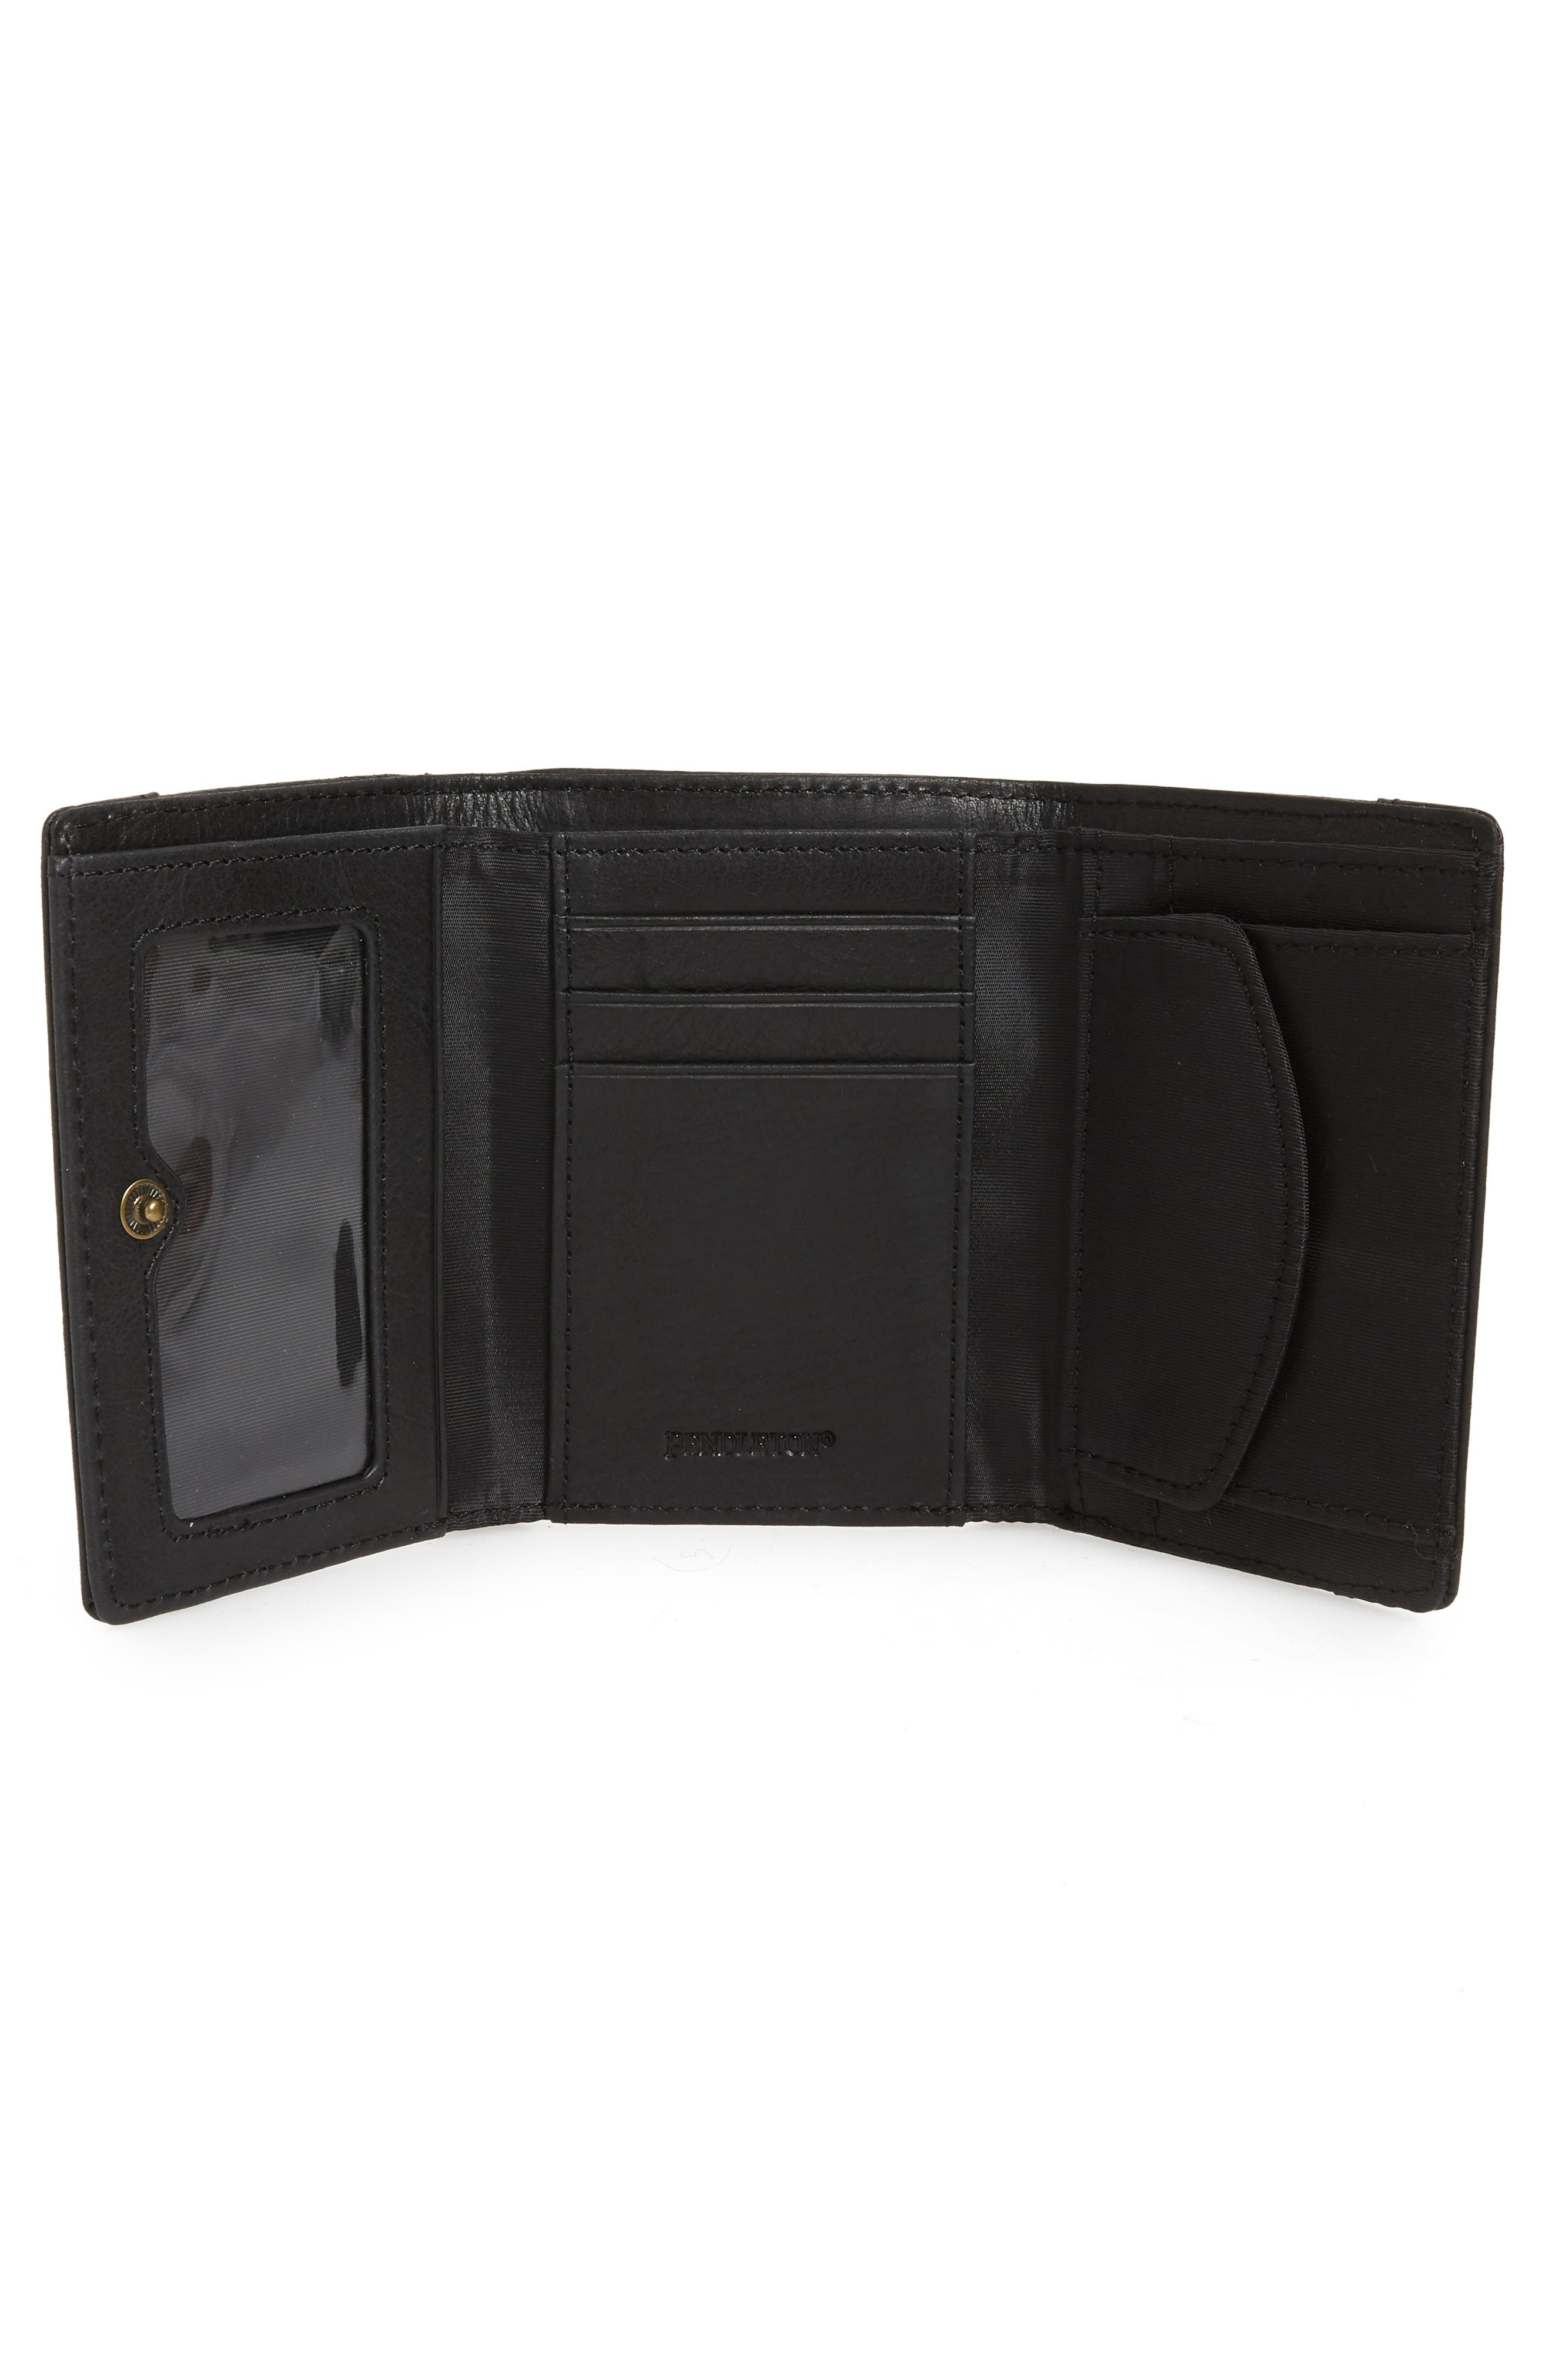 Trifold Wallet,                             Alternate thumbnail 2, color,                             002